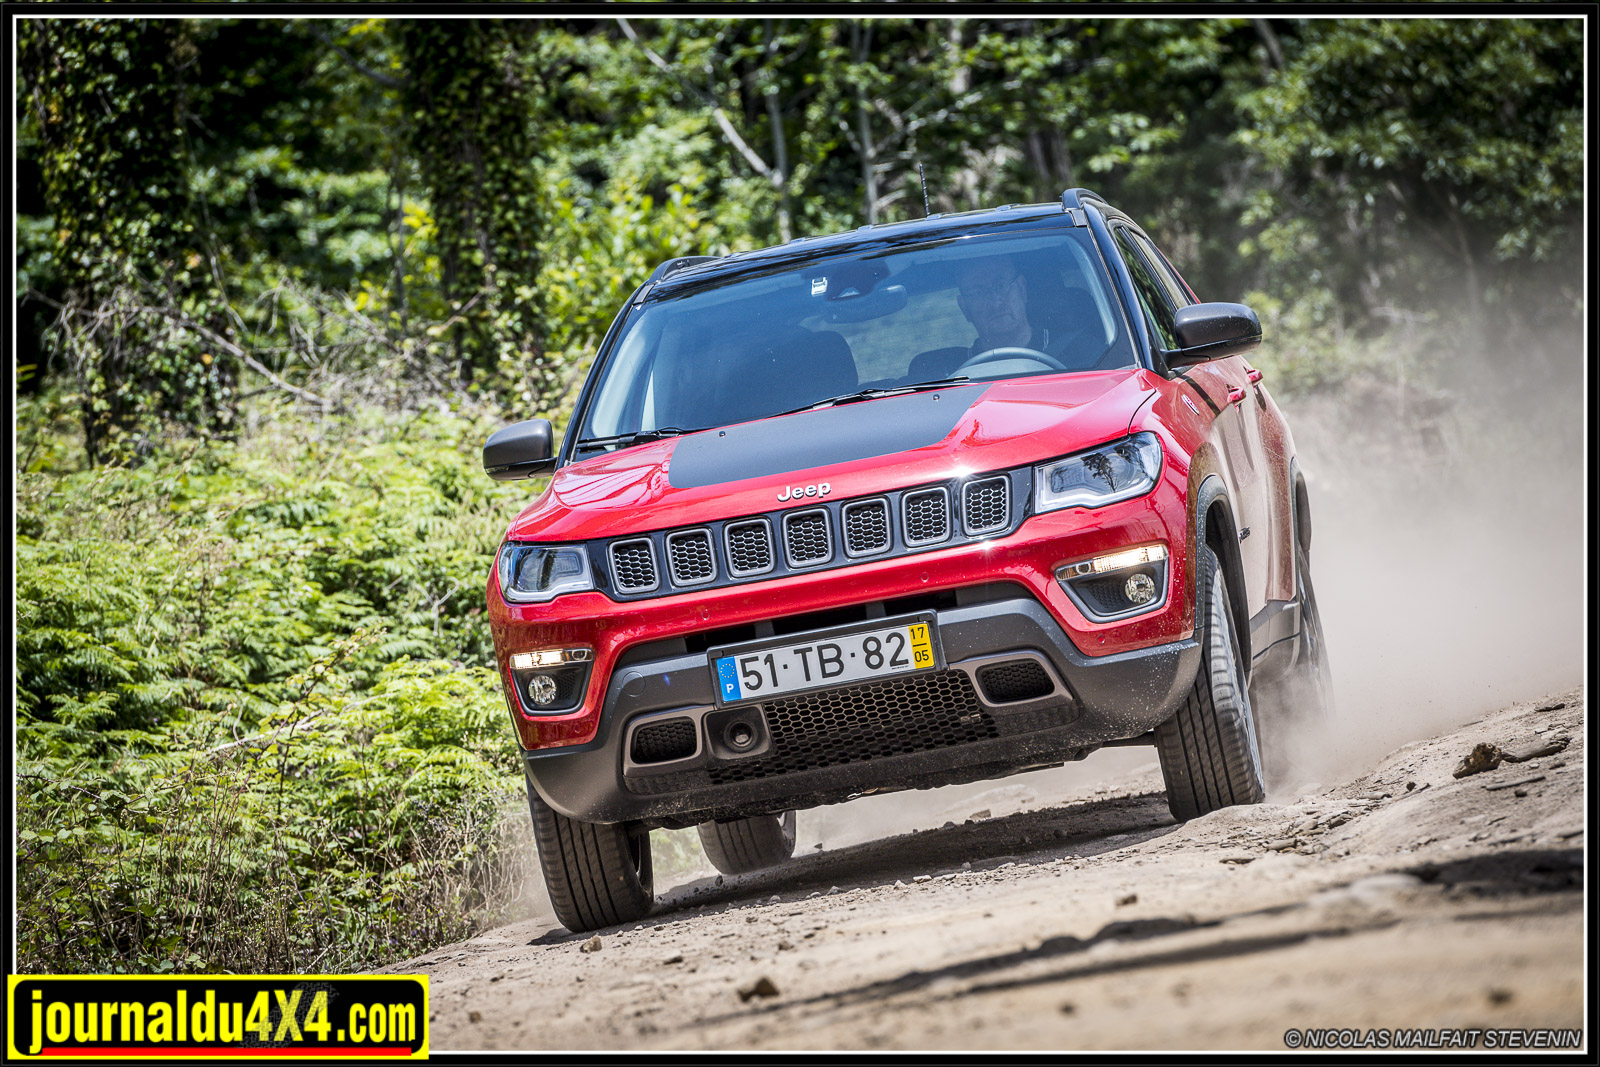 essai-test-jeep-compass-2017-5341.jpg